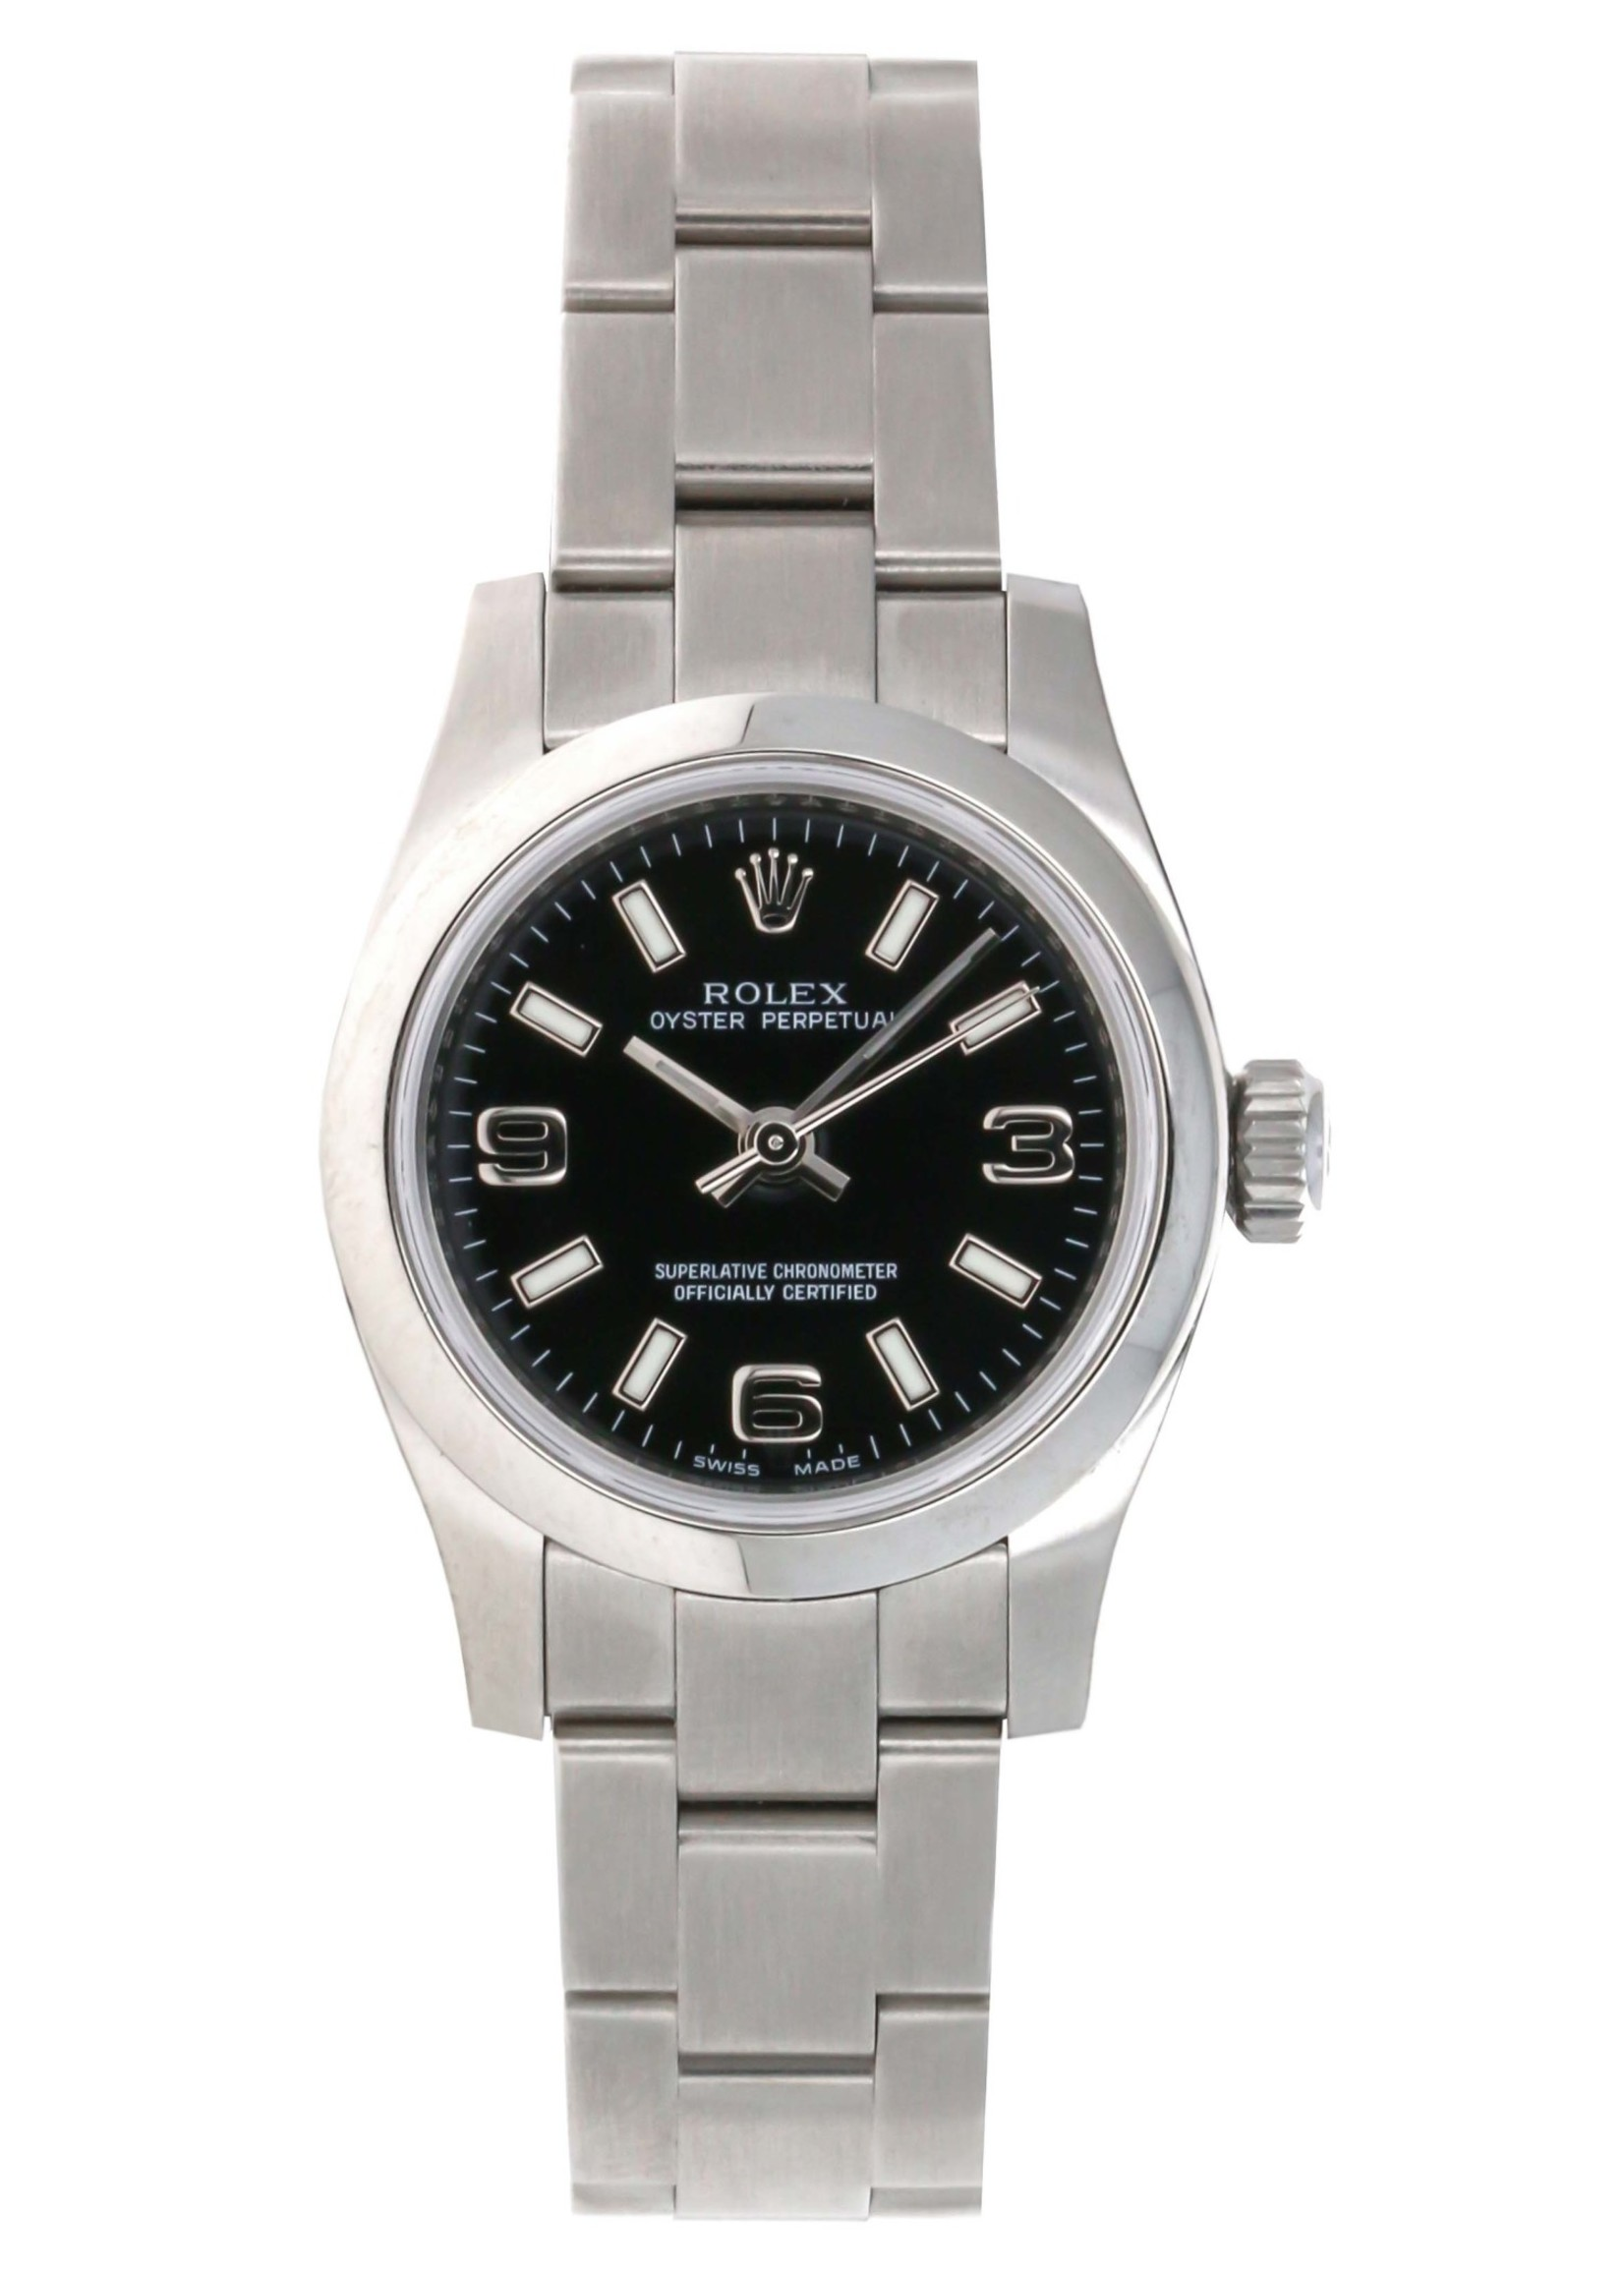 Rolex ROLEX OYSTER PERPETUAL 26MM (B+P) - NEW OLD STOCK #176200